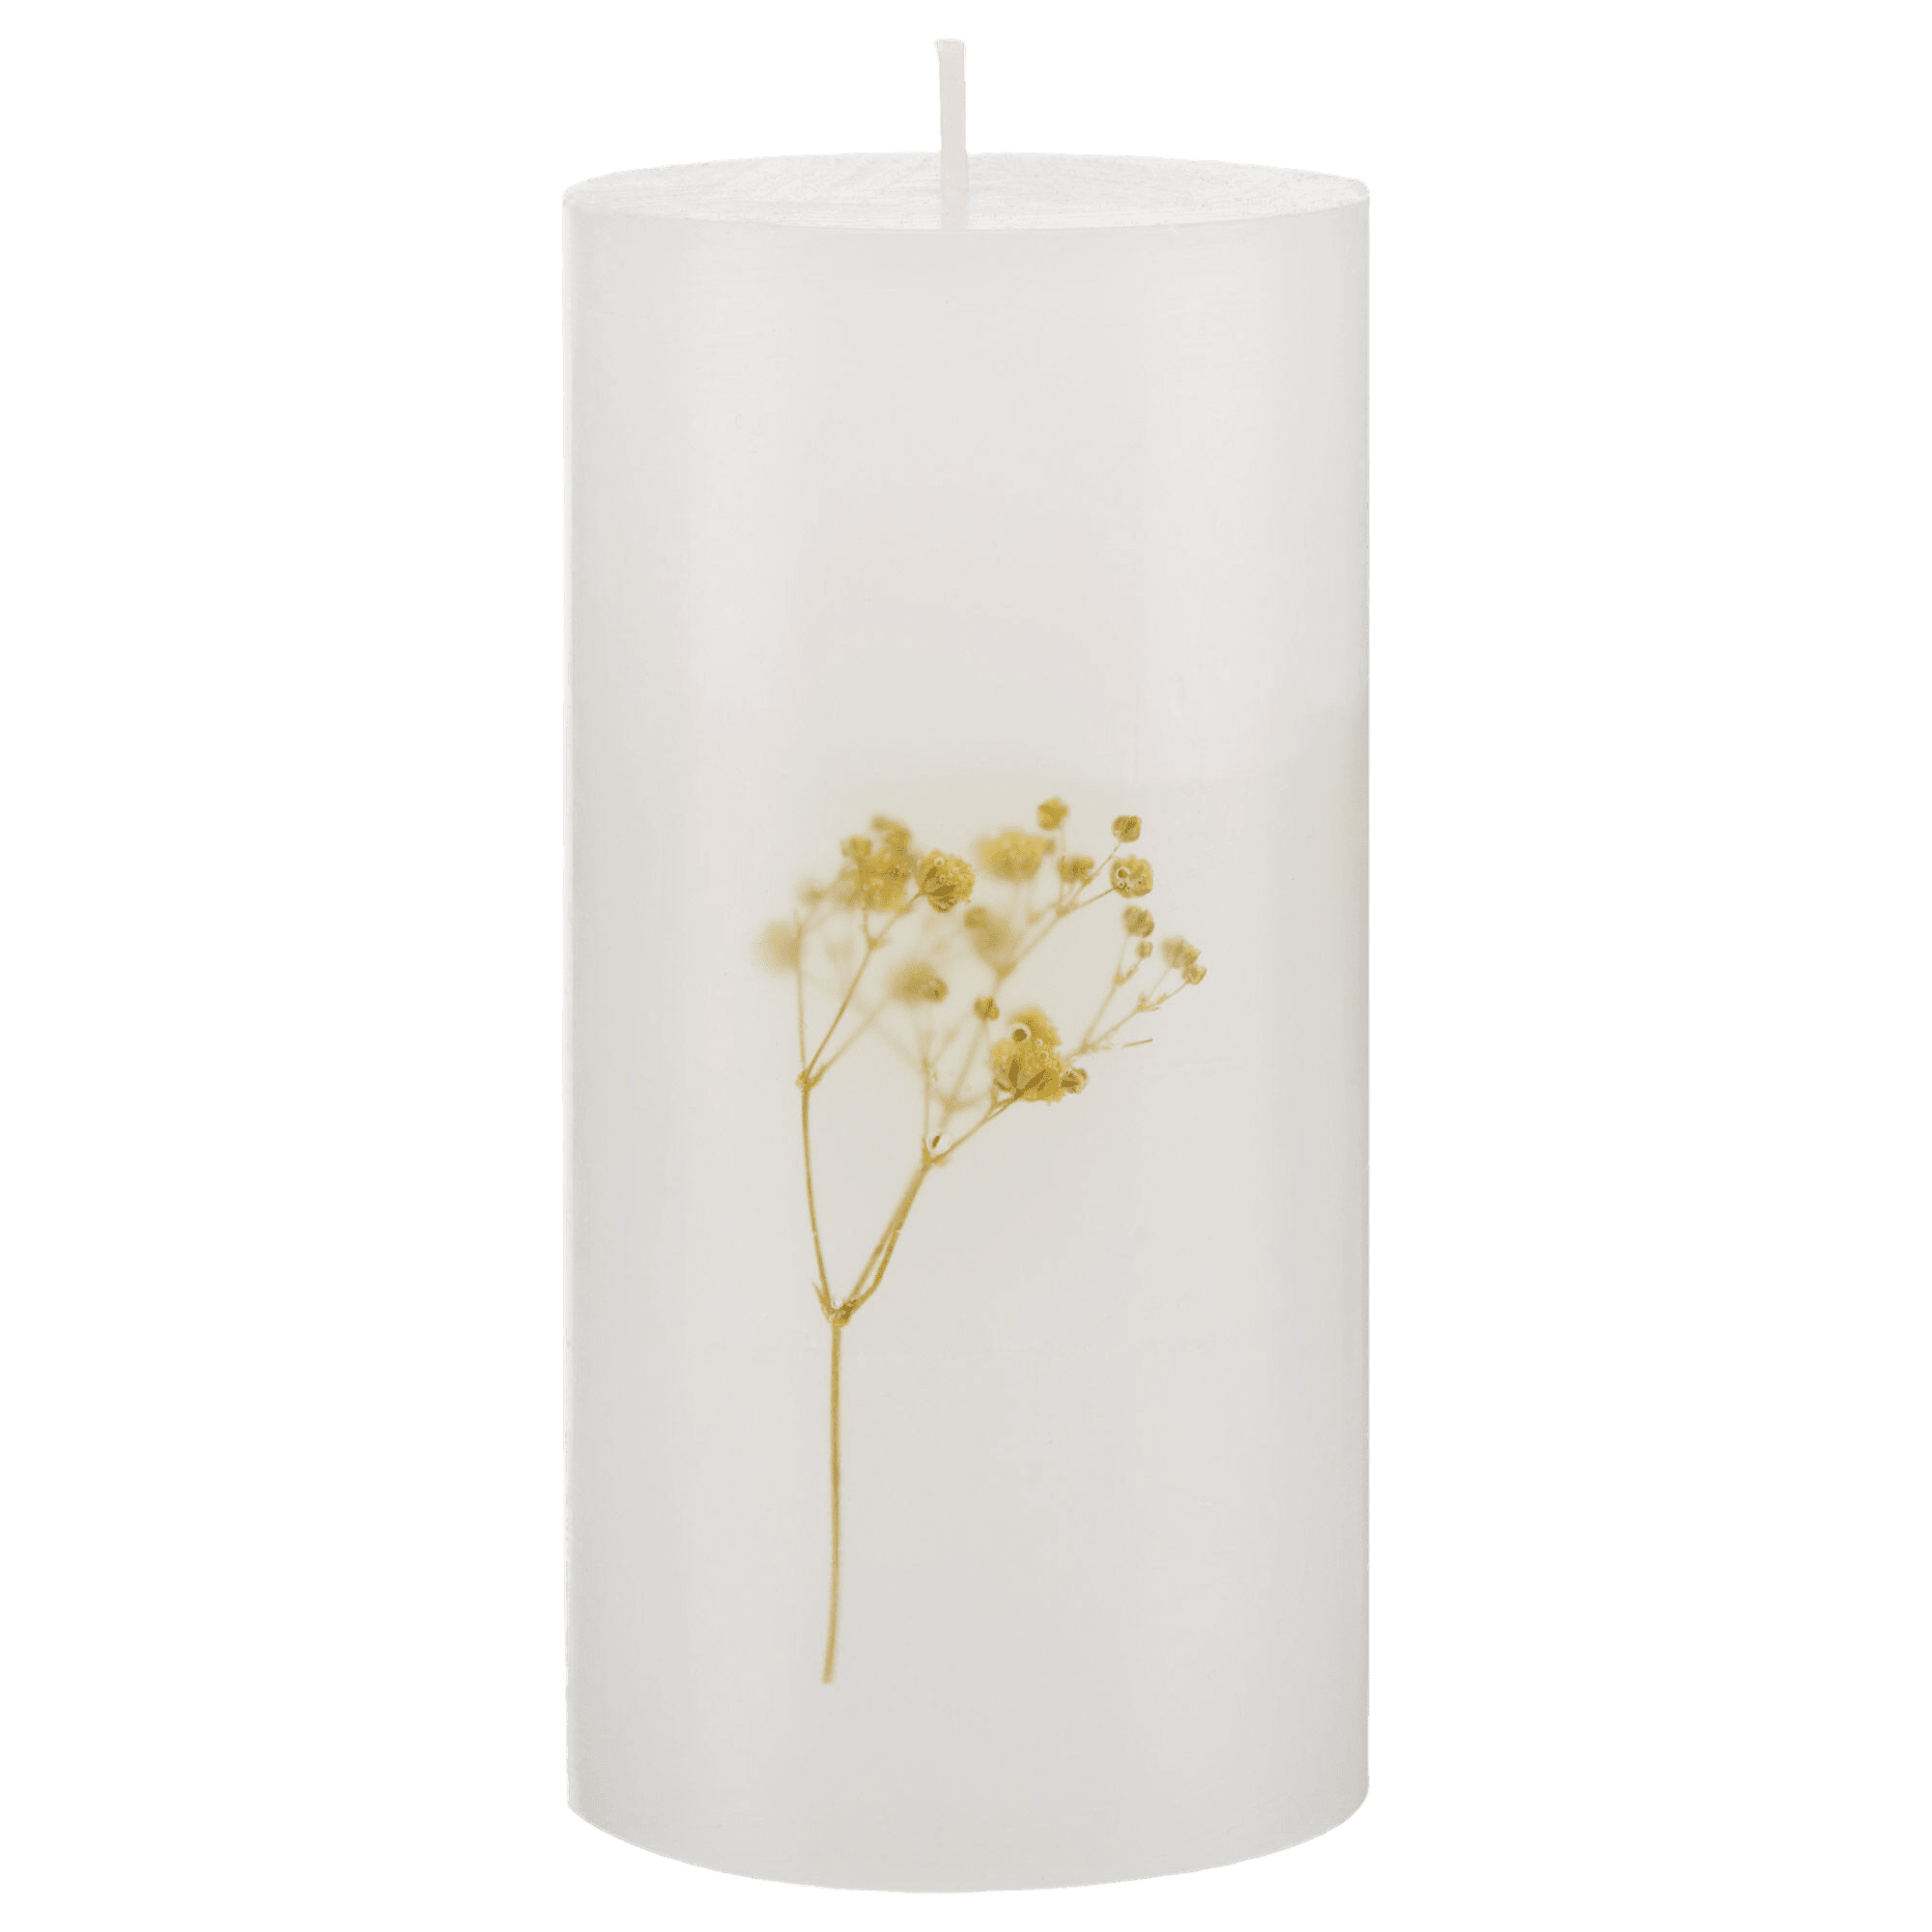 White Candle with Yellow Flower